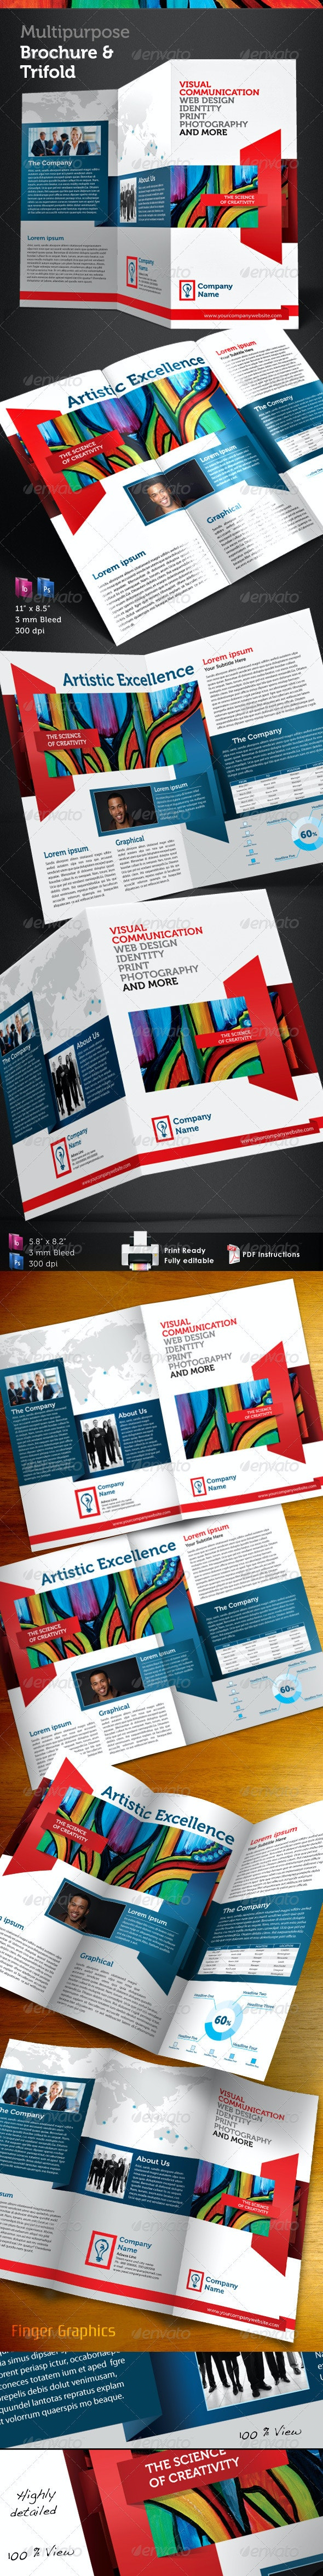 Multipurpose Brochure and Trifold - Corporate Brochures